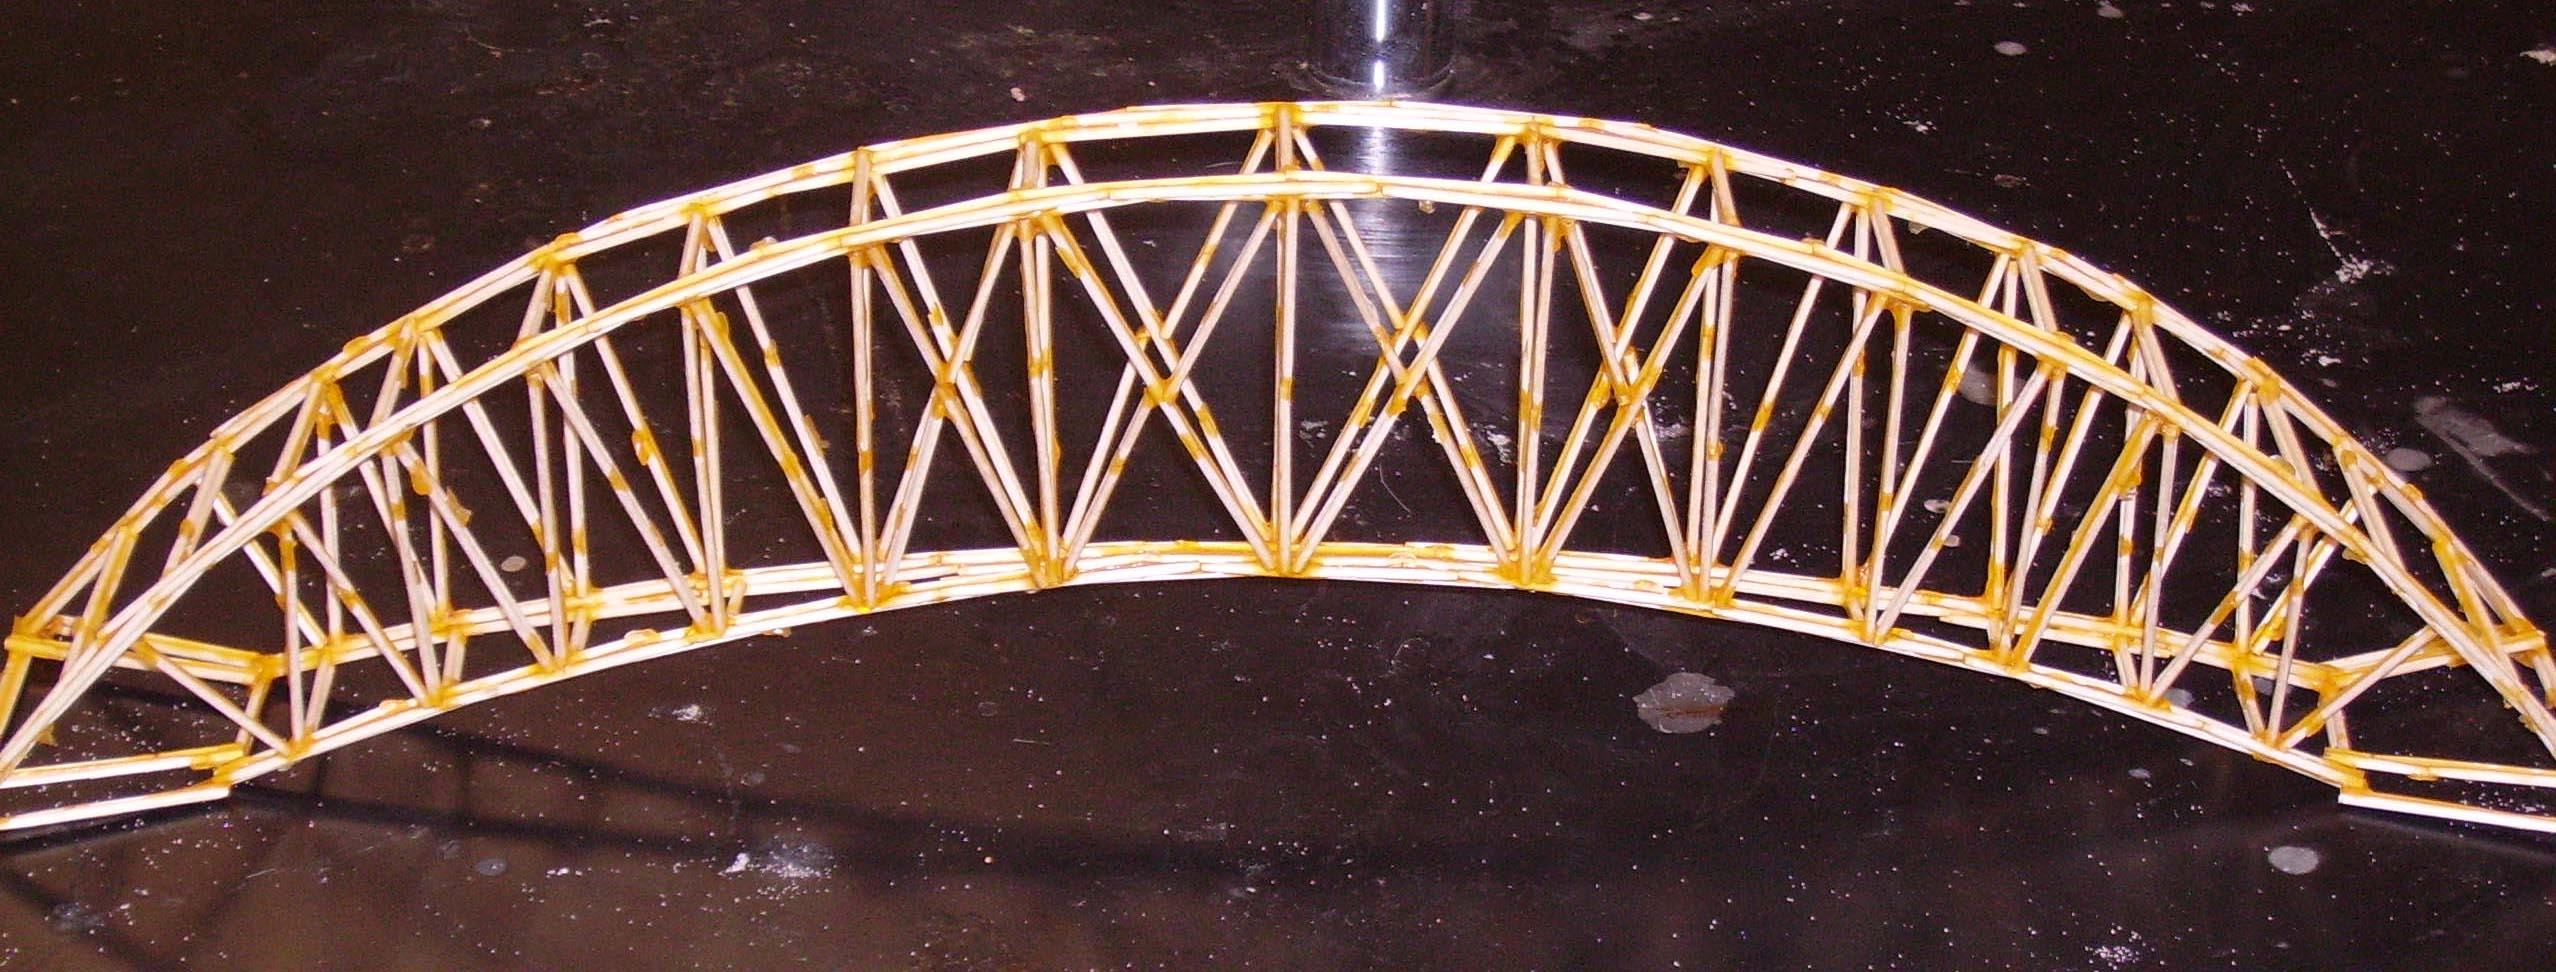 Build Shed 2017 How To Build A Truss Bridge With Toothpicks